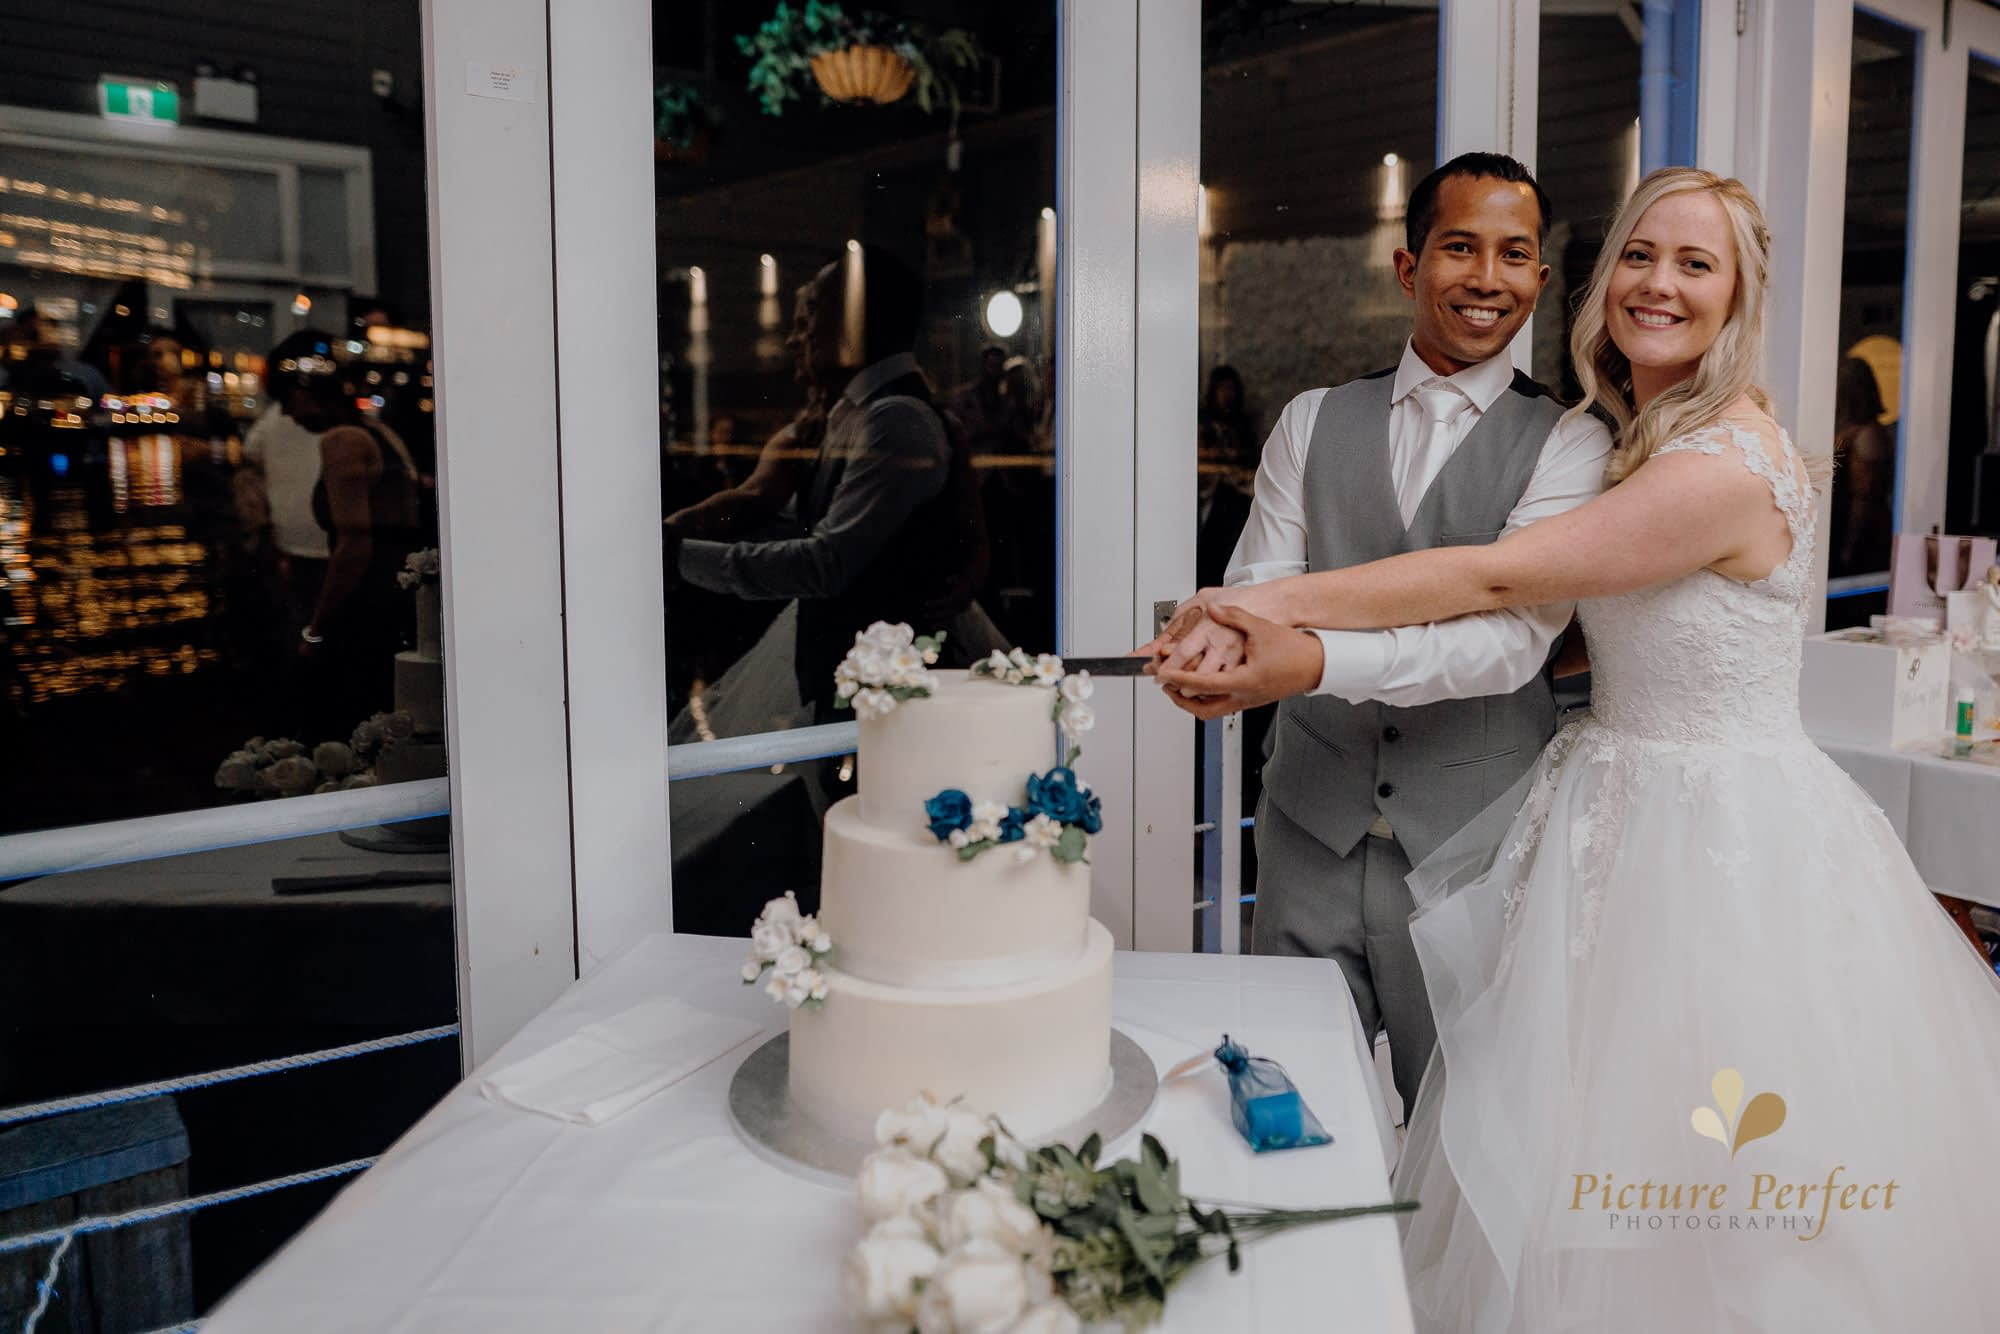 the bride and the groom slicing the wedding cake